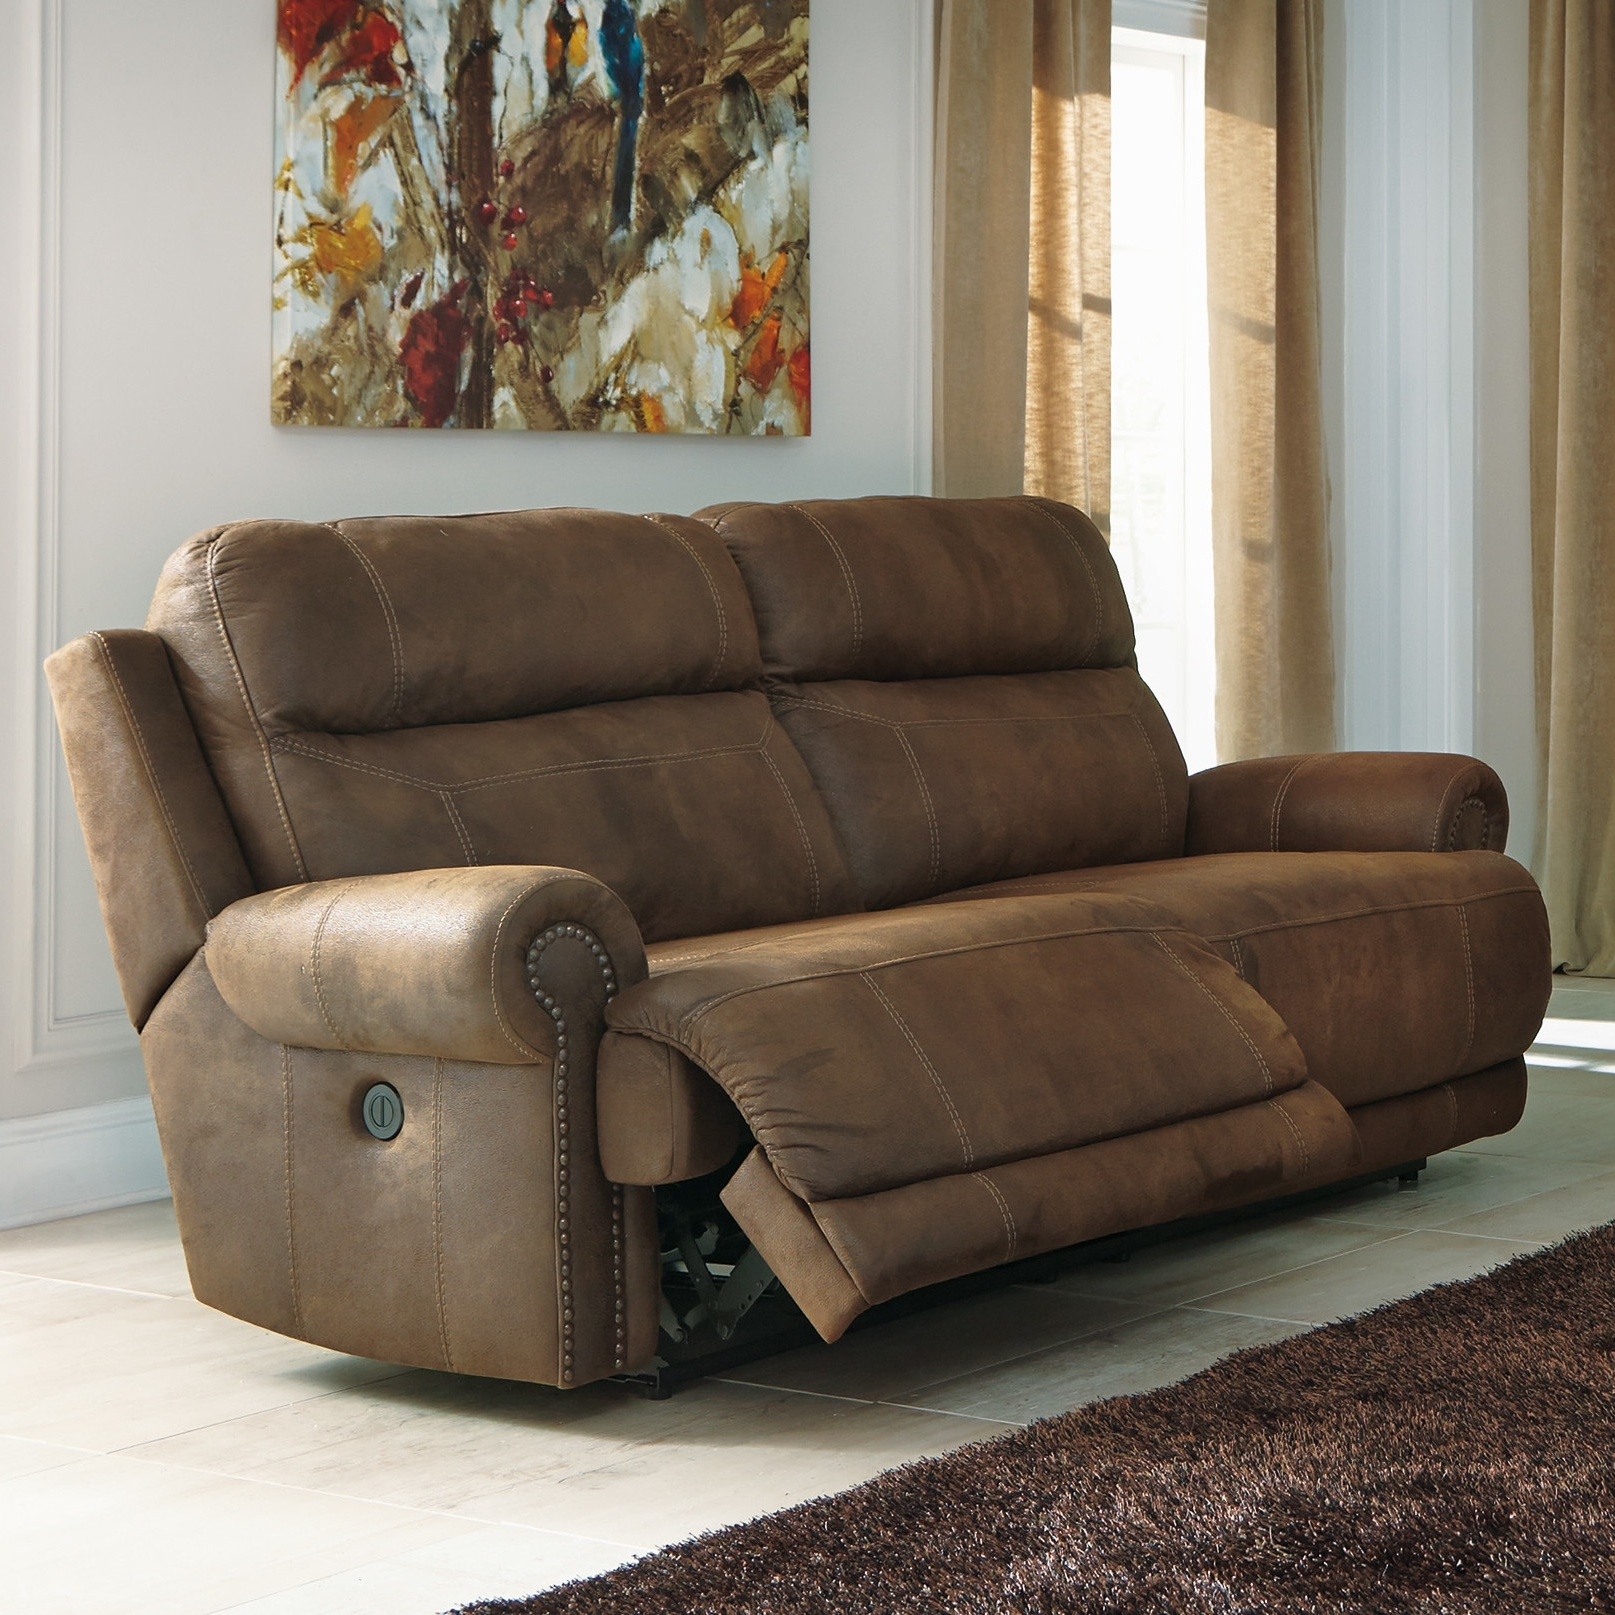 Trendy 2 Seat Sectional Sofas With Austere 2 Seat Reclining Sofasignature Designashley (View 19 of 20)